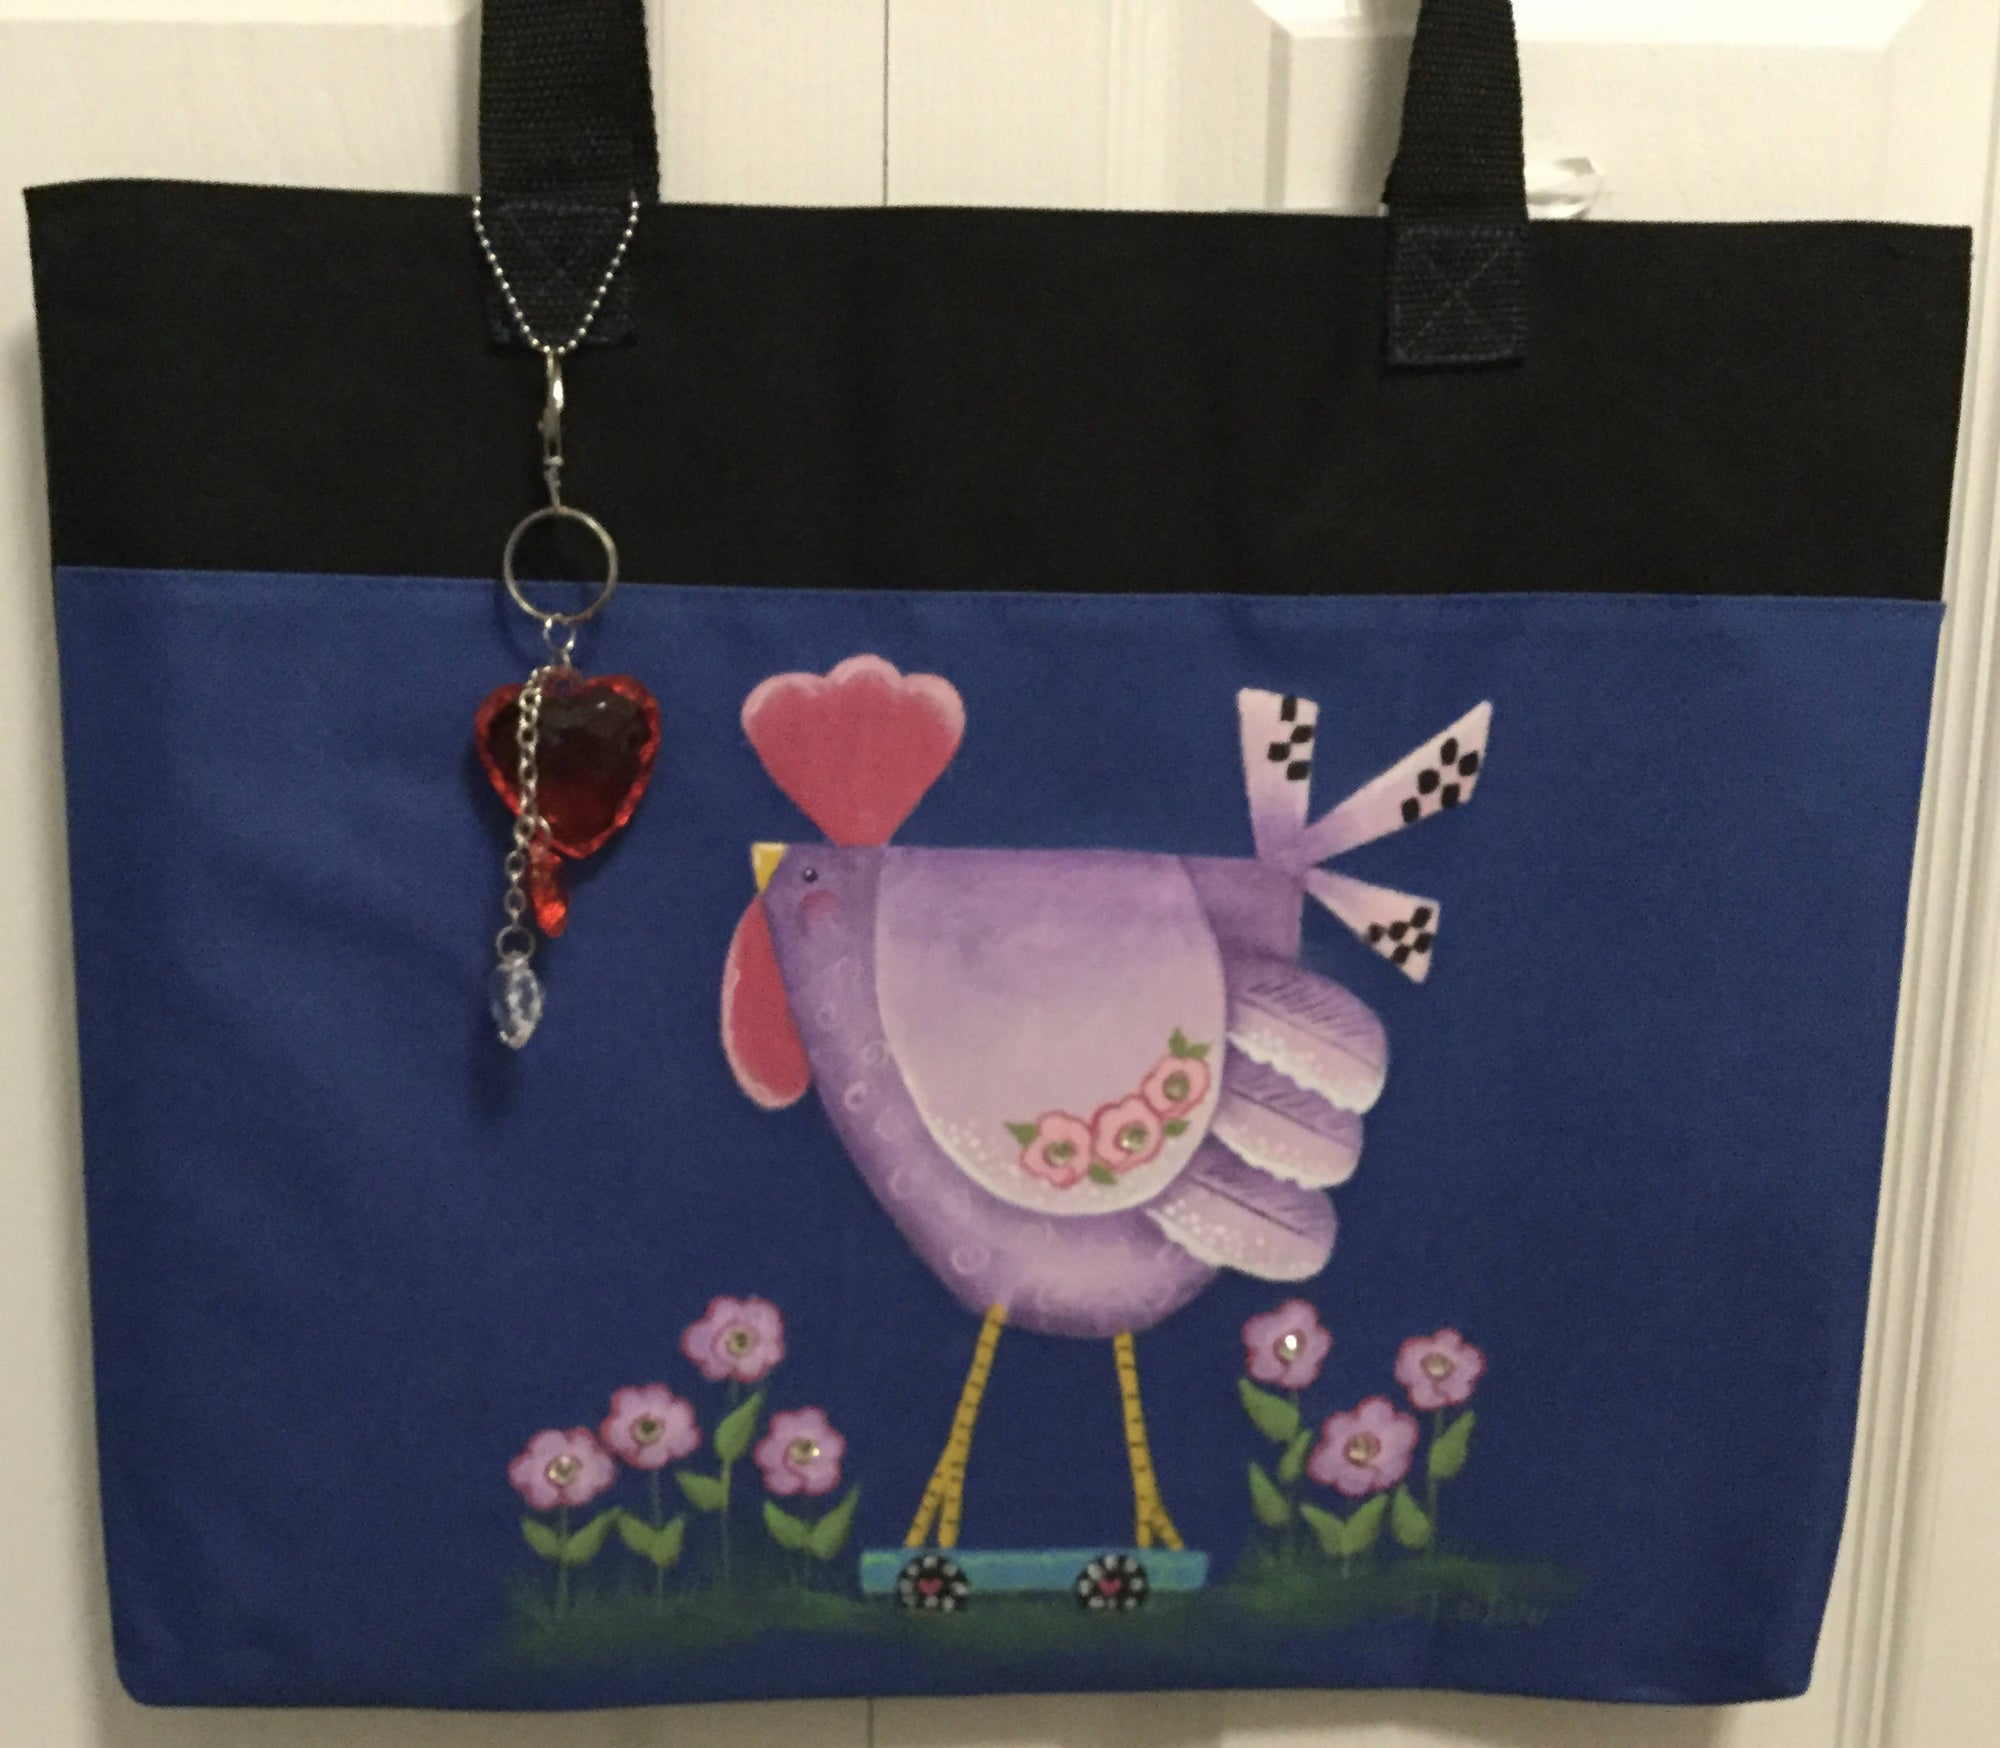 A Hand Painted Canvas Shopping Bag with Cute Chicken and Flowers